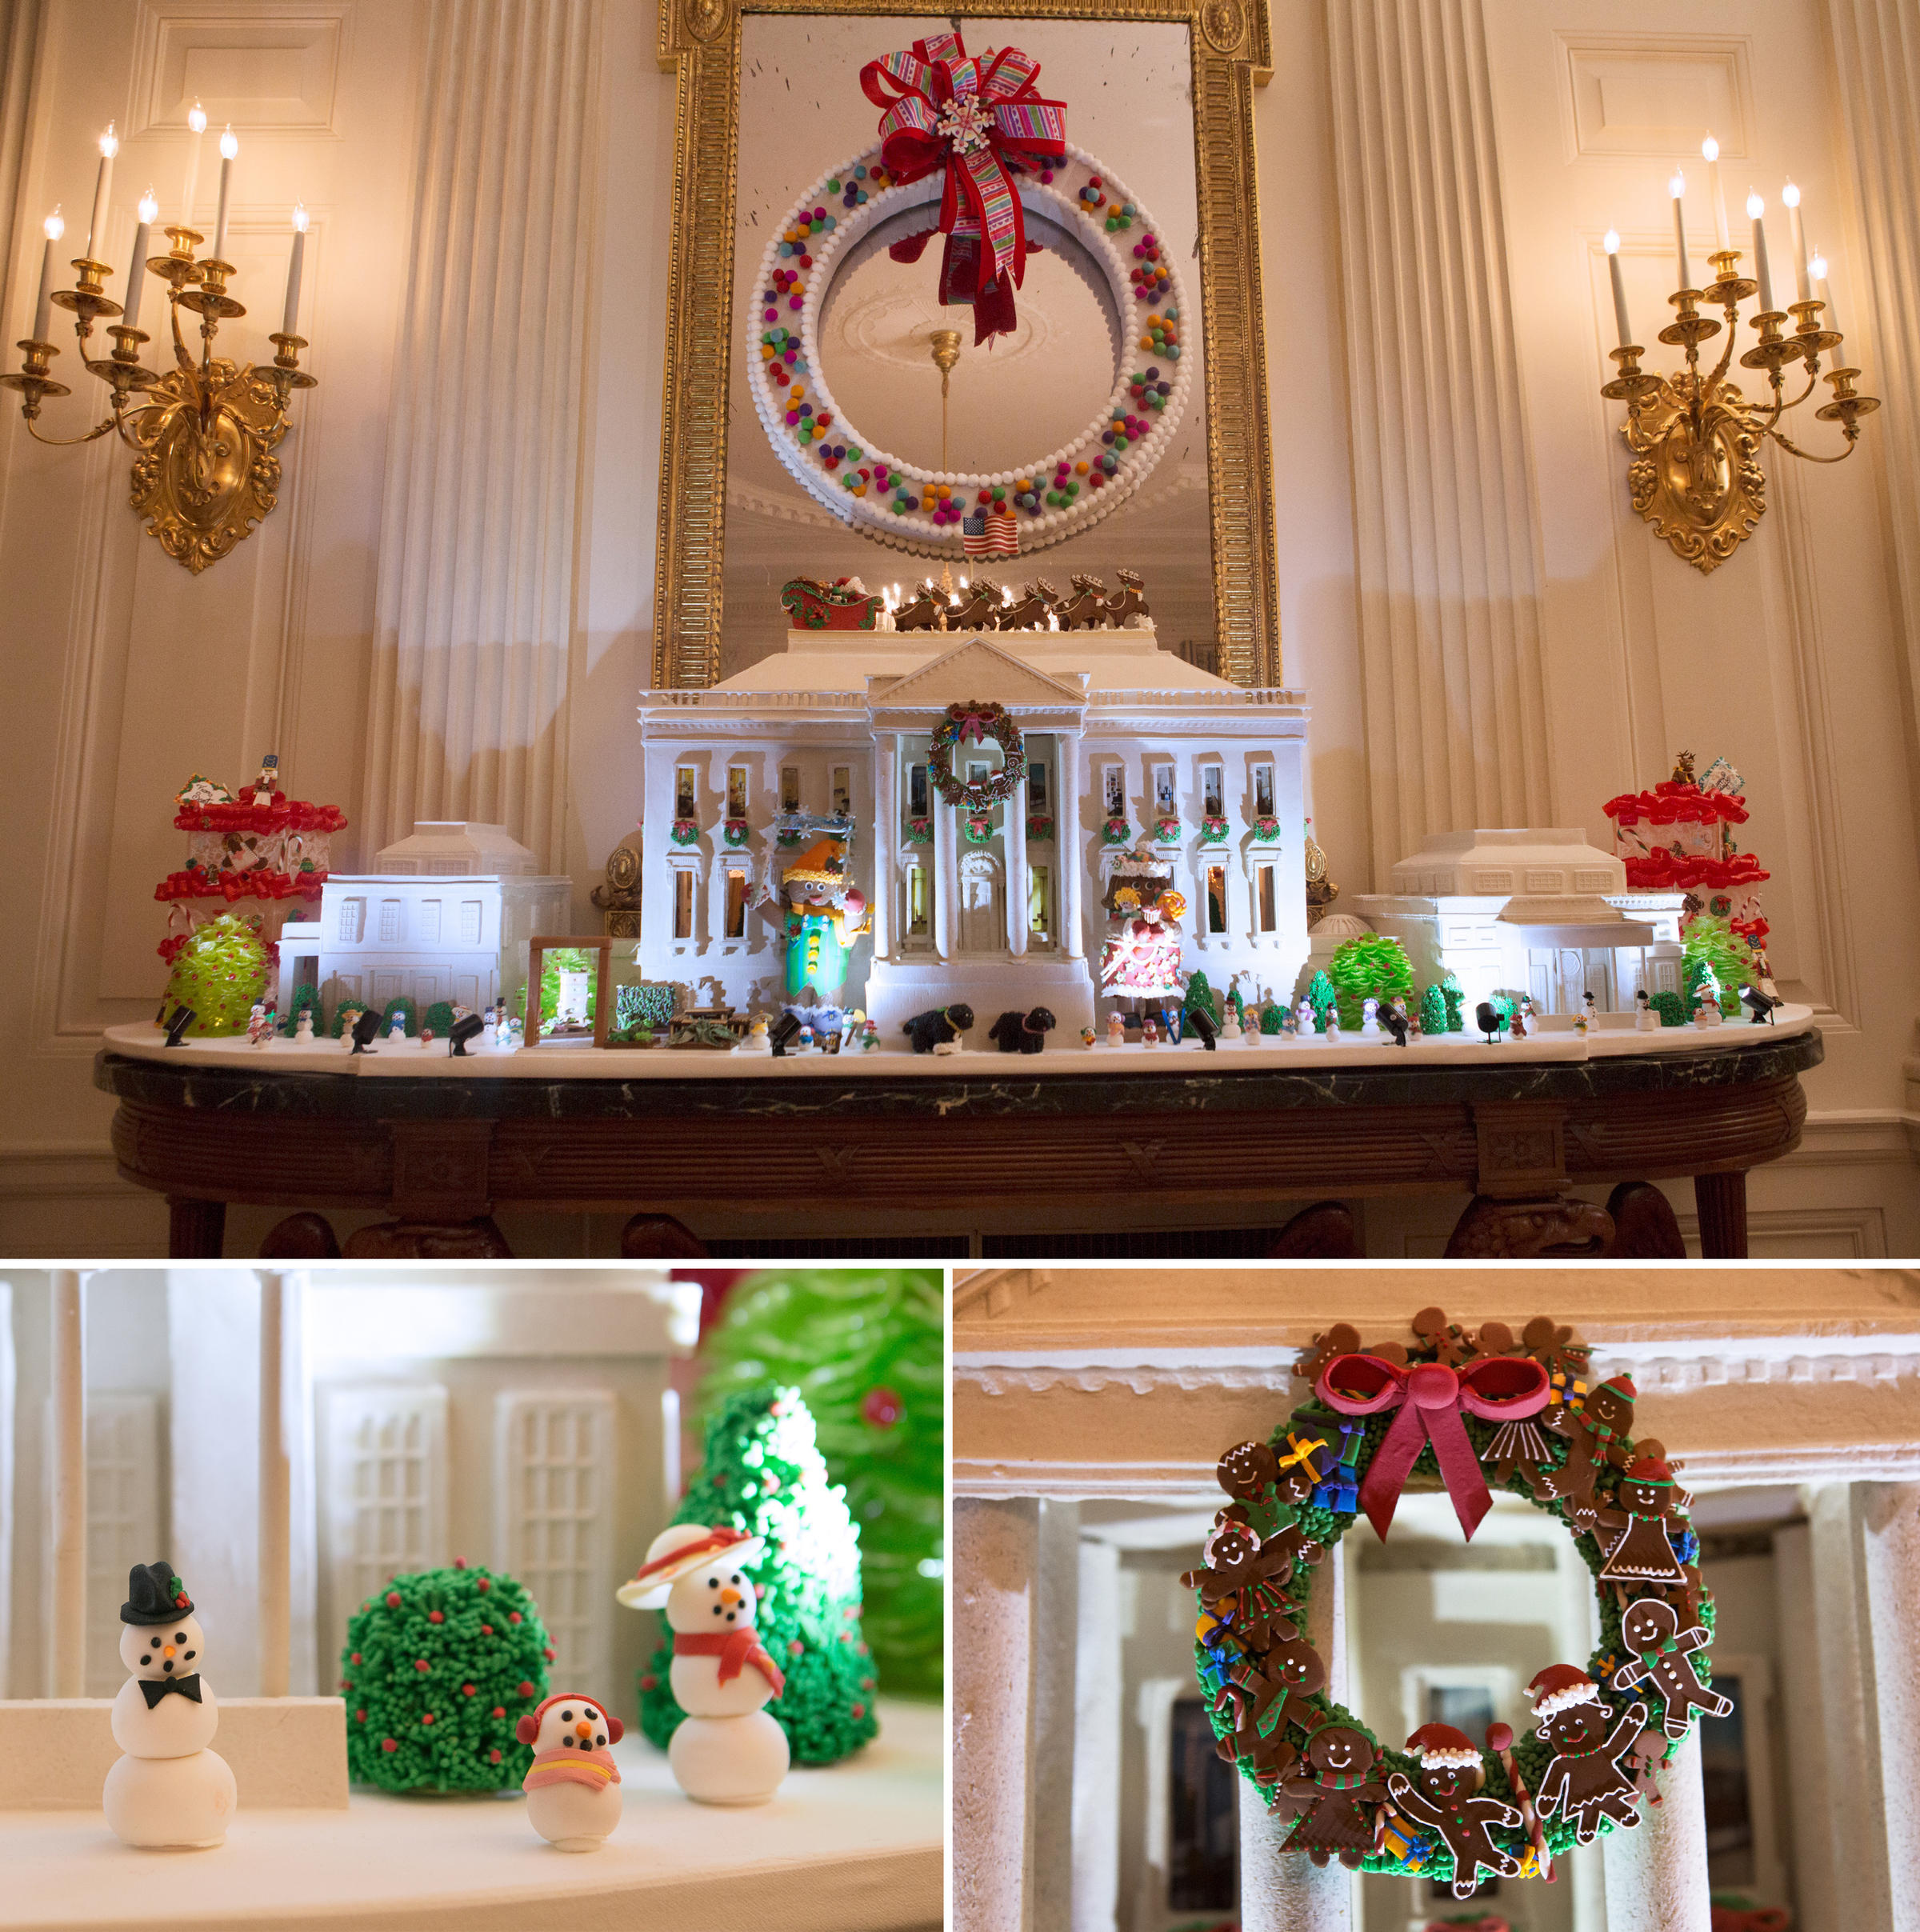 This yearu0027s White House Gingerbread House is